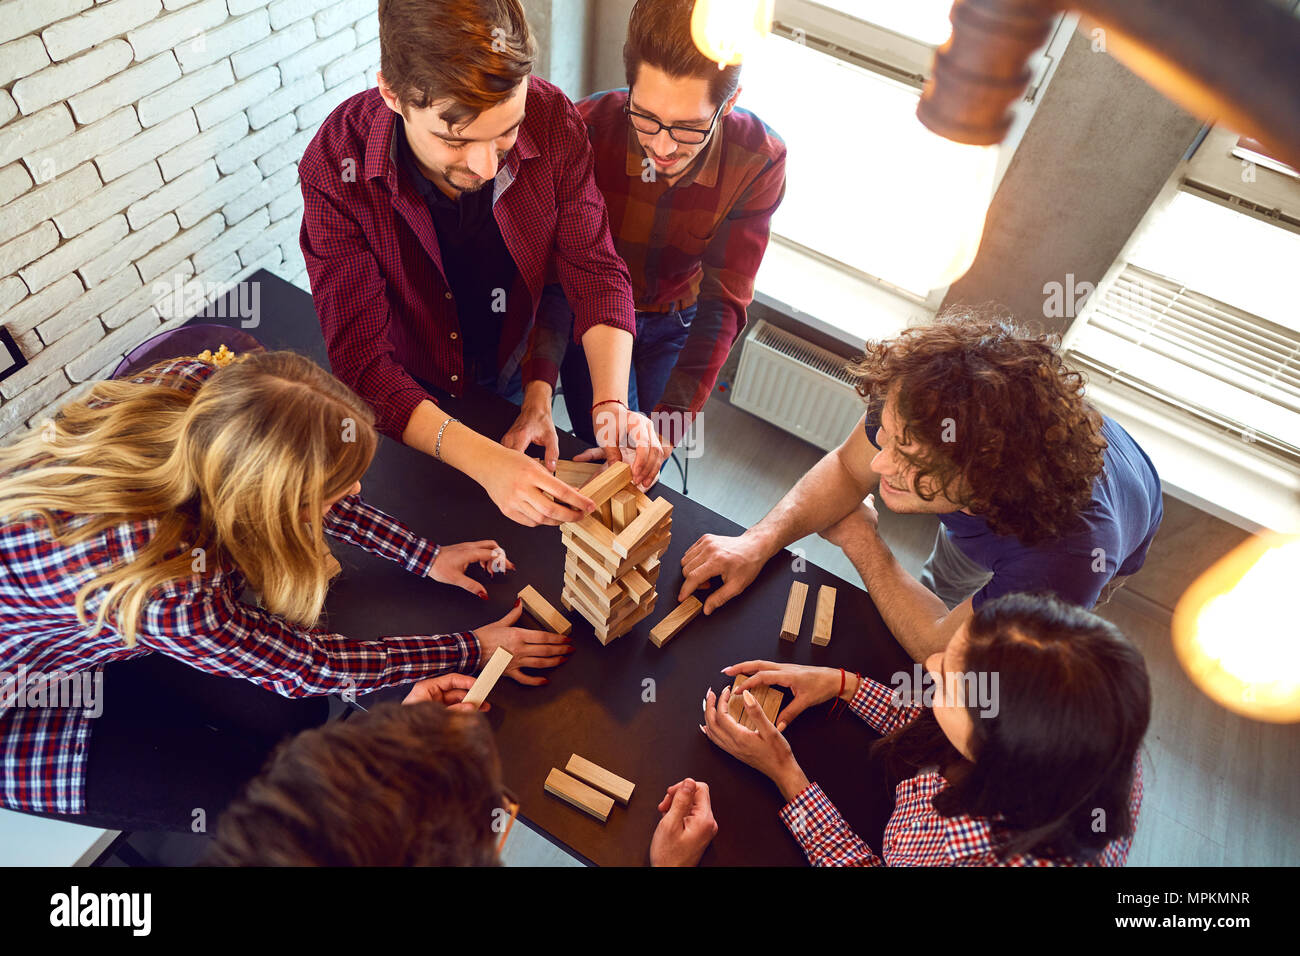 Friends Playing Board Game Stock Photos & Friends Playing Board Game